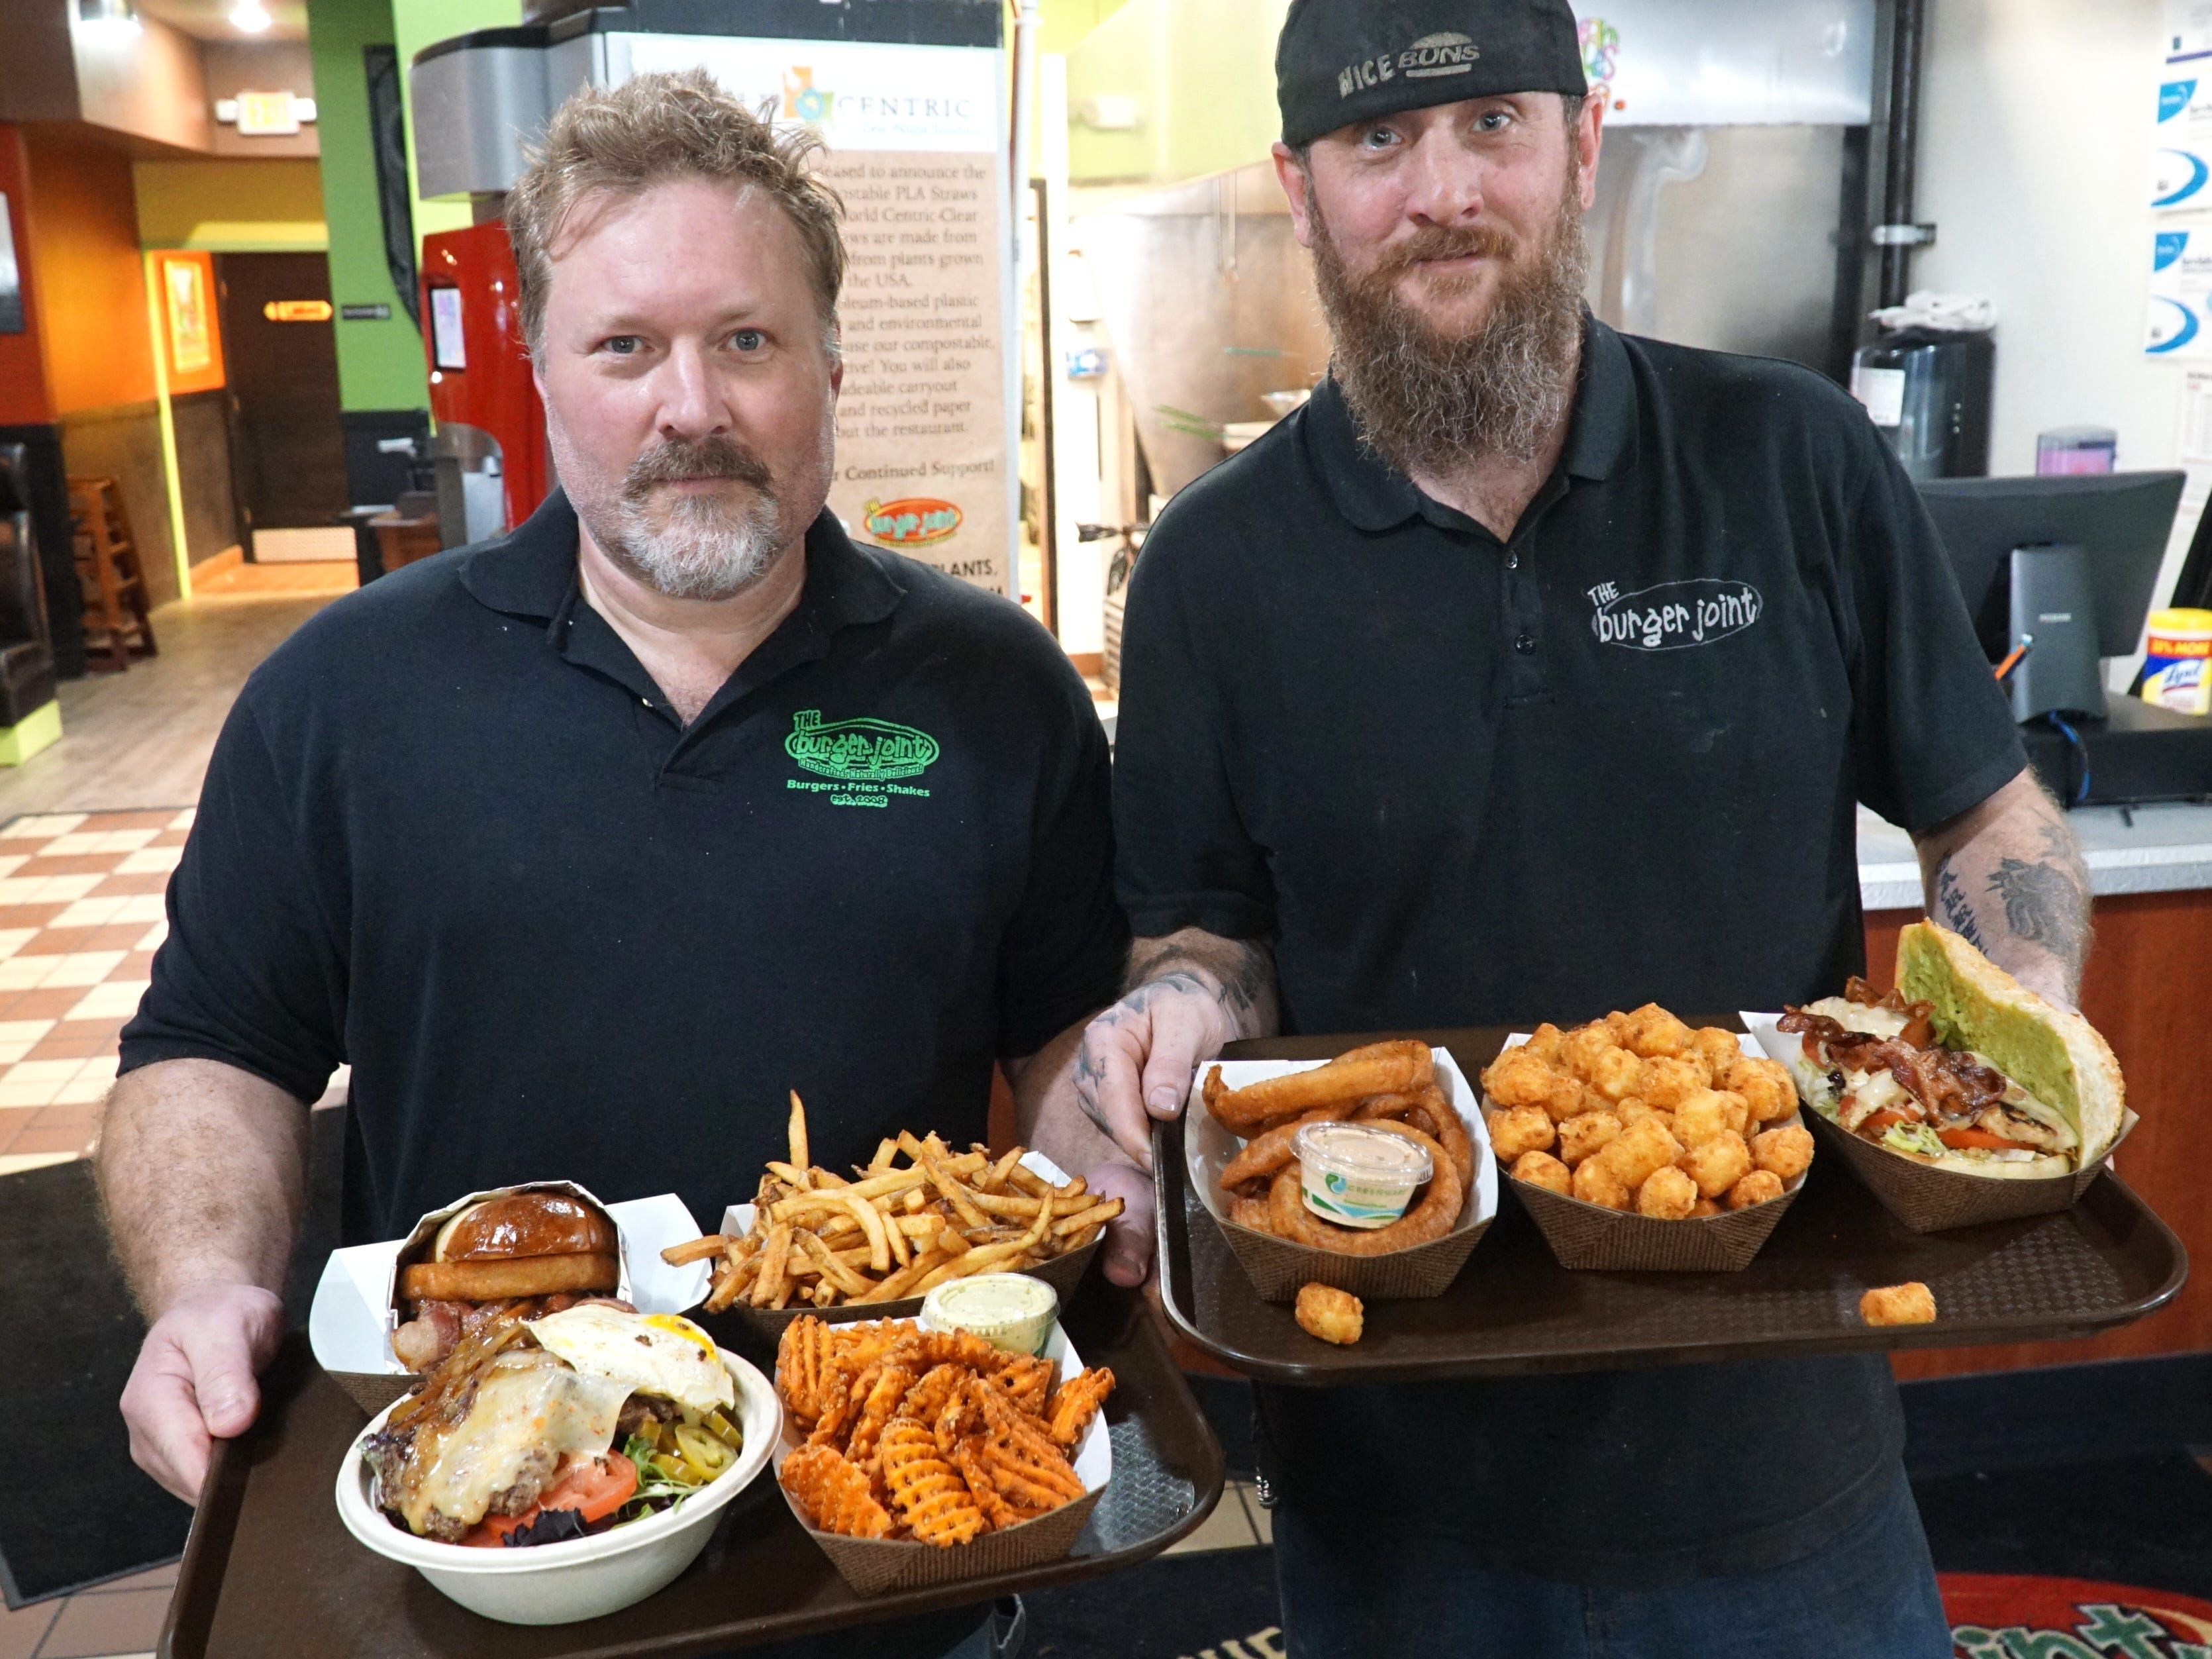 Milford Burger Joint co-operators Jason Monarch, left, and Brian Belwood show off two trays of some of their fare including a bacon cheeseburger on a brioche bun (and an onion ring kicker), waffle-cut sweet potatoes, fries, onion rings and tater tots, and a chicken-avacado club sandwich.